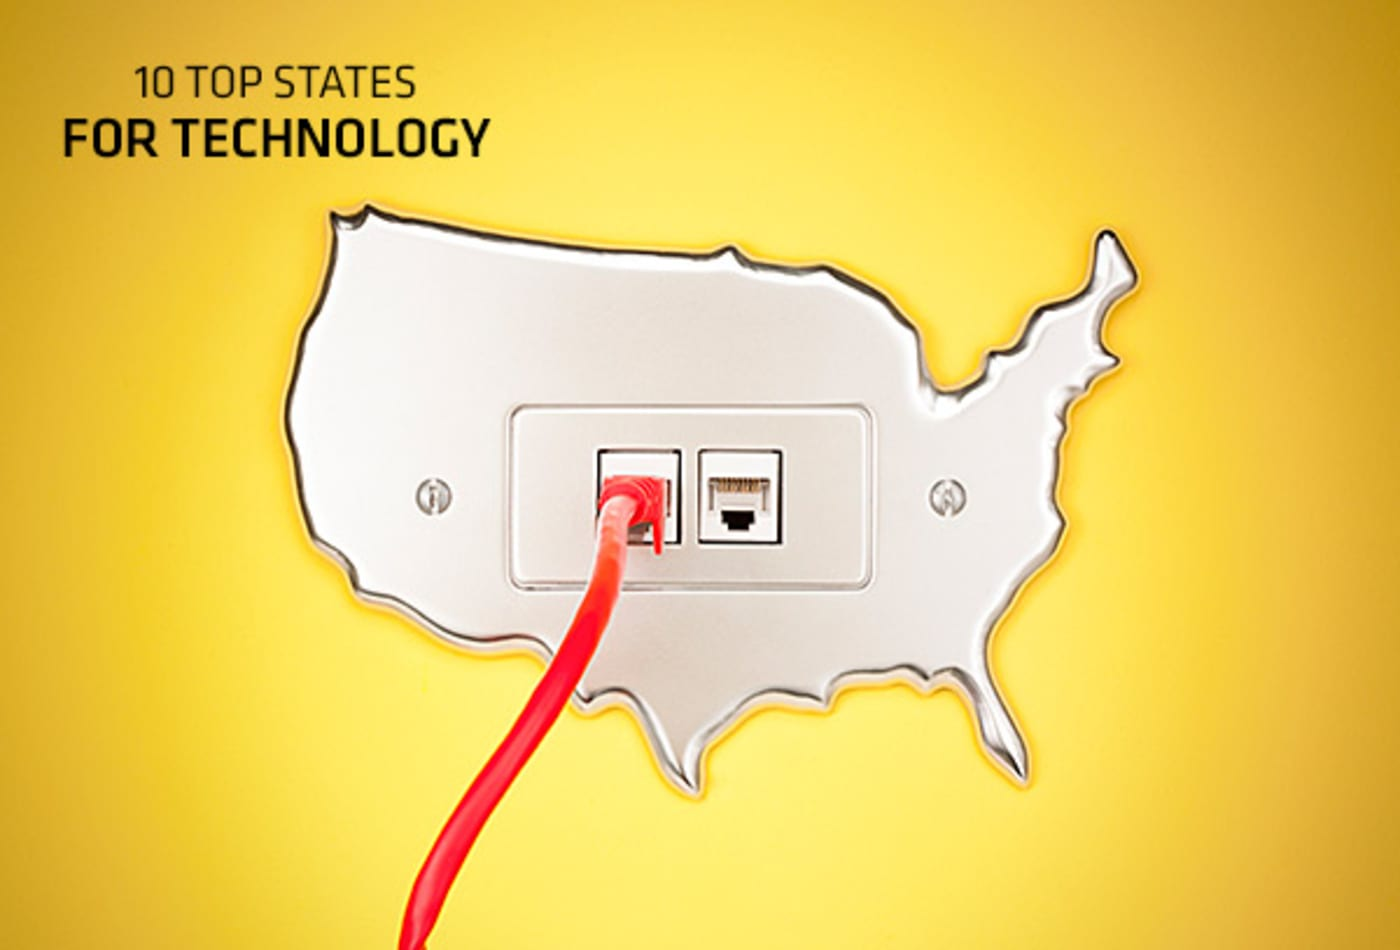 10-top-states-technology-cover.jpg